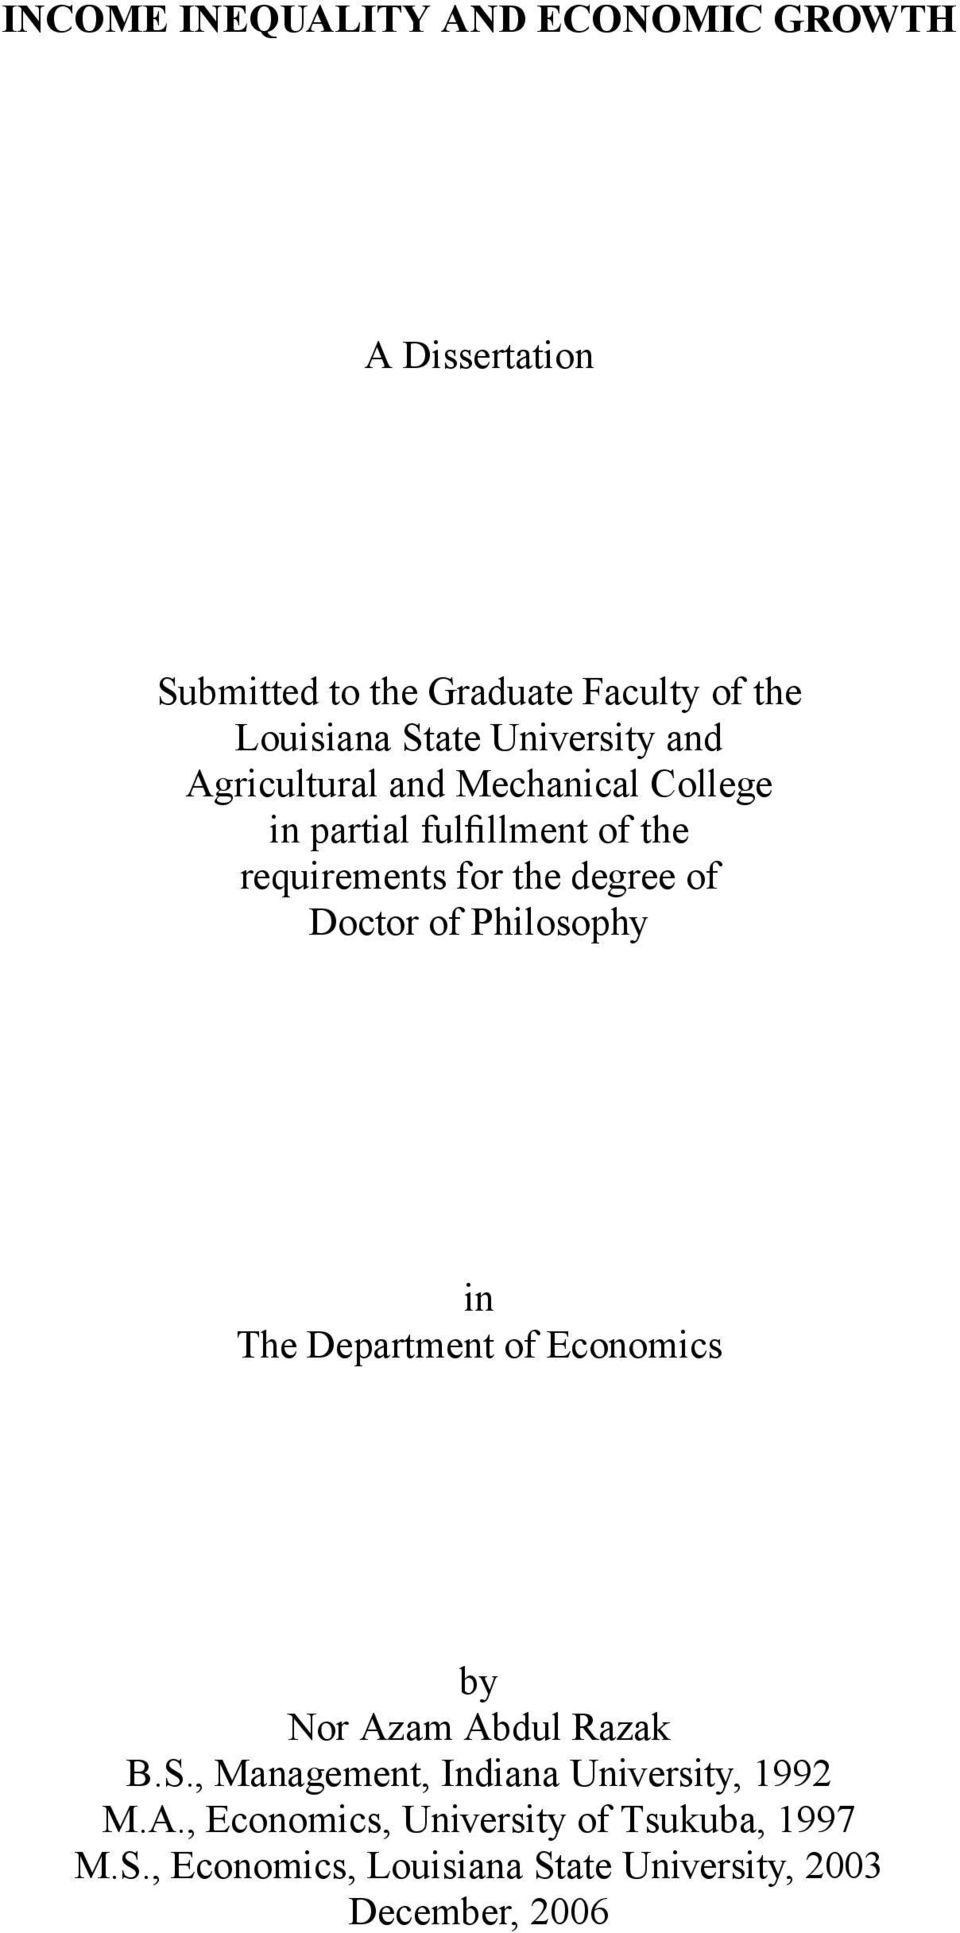 Doctor of Philosophy in The Department of Economics by Nor Azam Abdul Razak B.S.